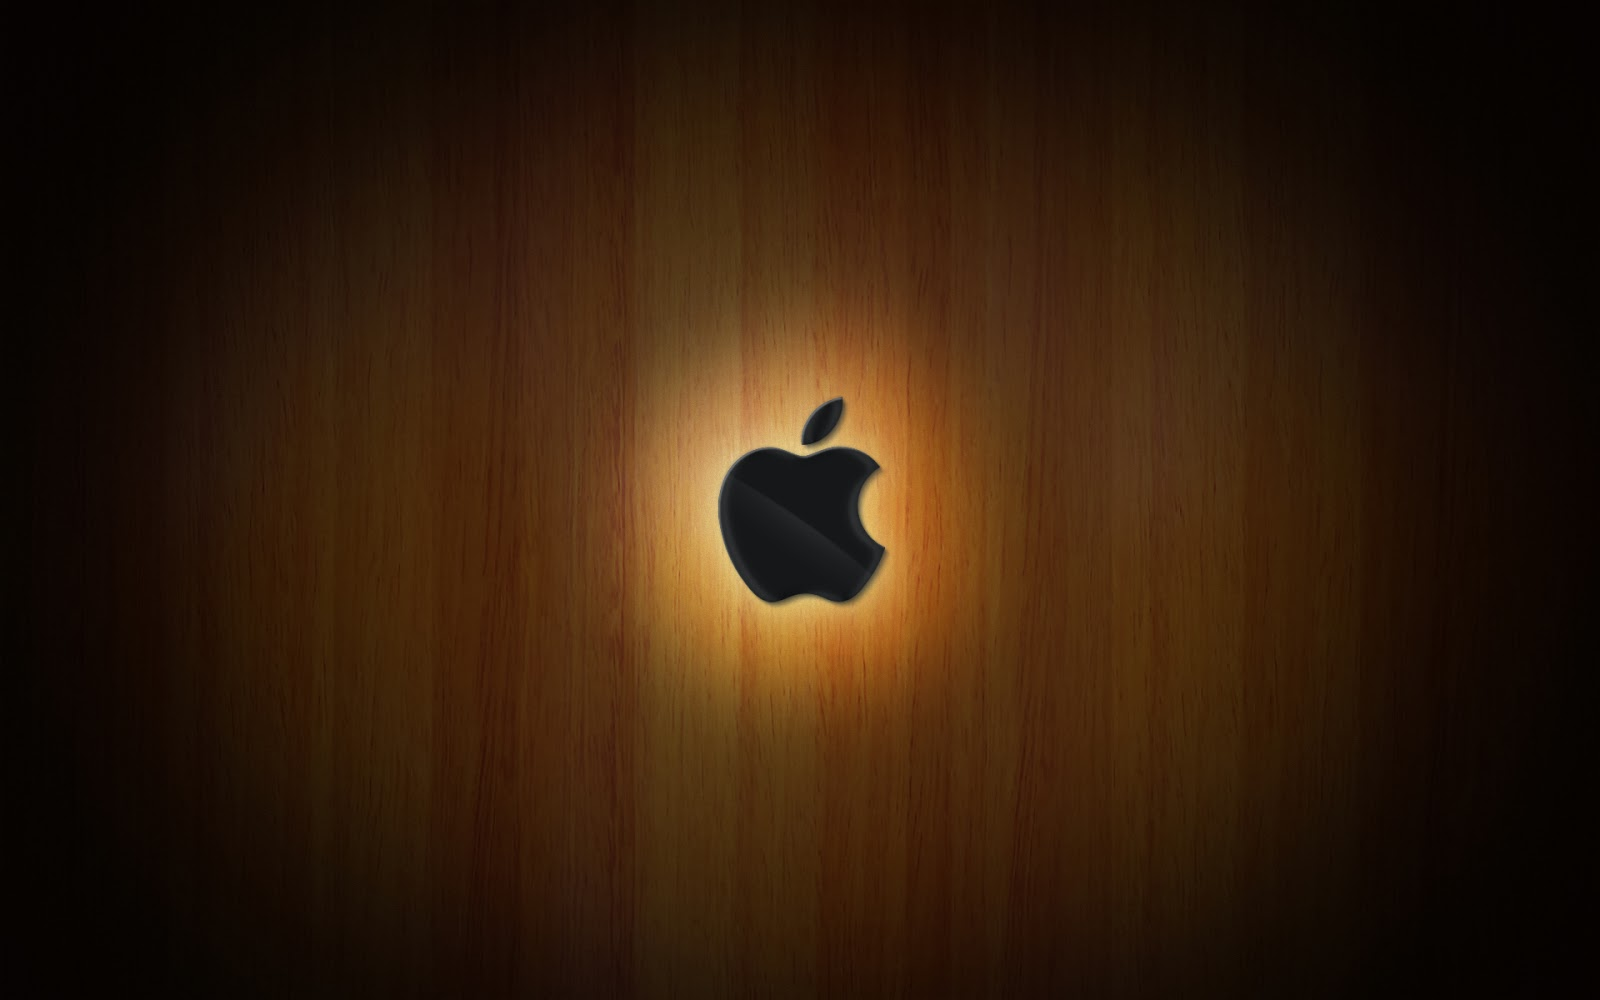 Hd wallpapers 1080p apple nice pics gallery for Wallpaper hd 1080p home